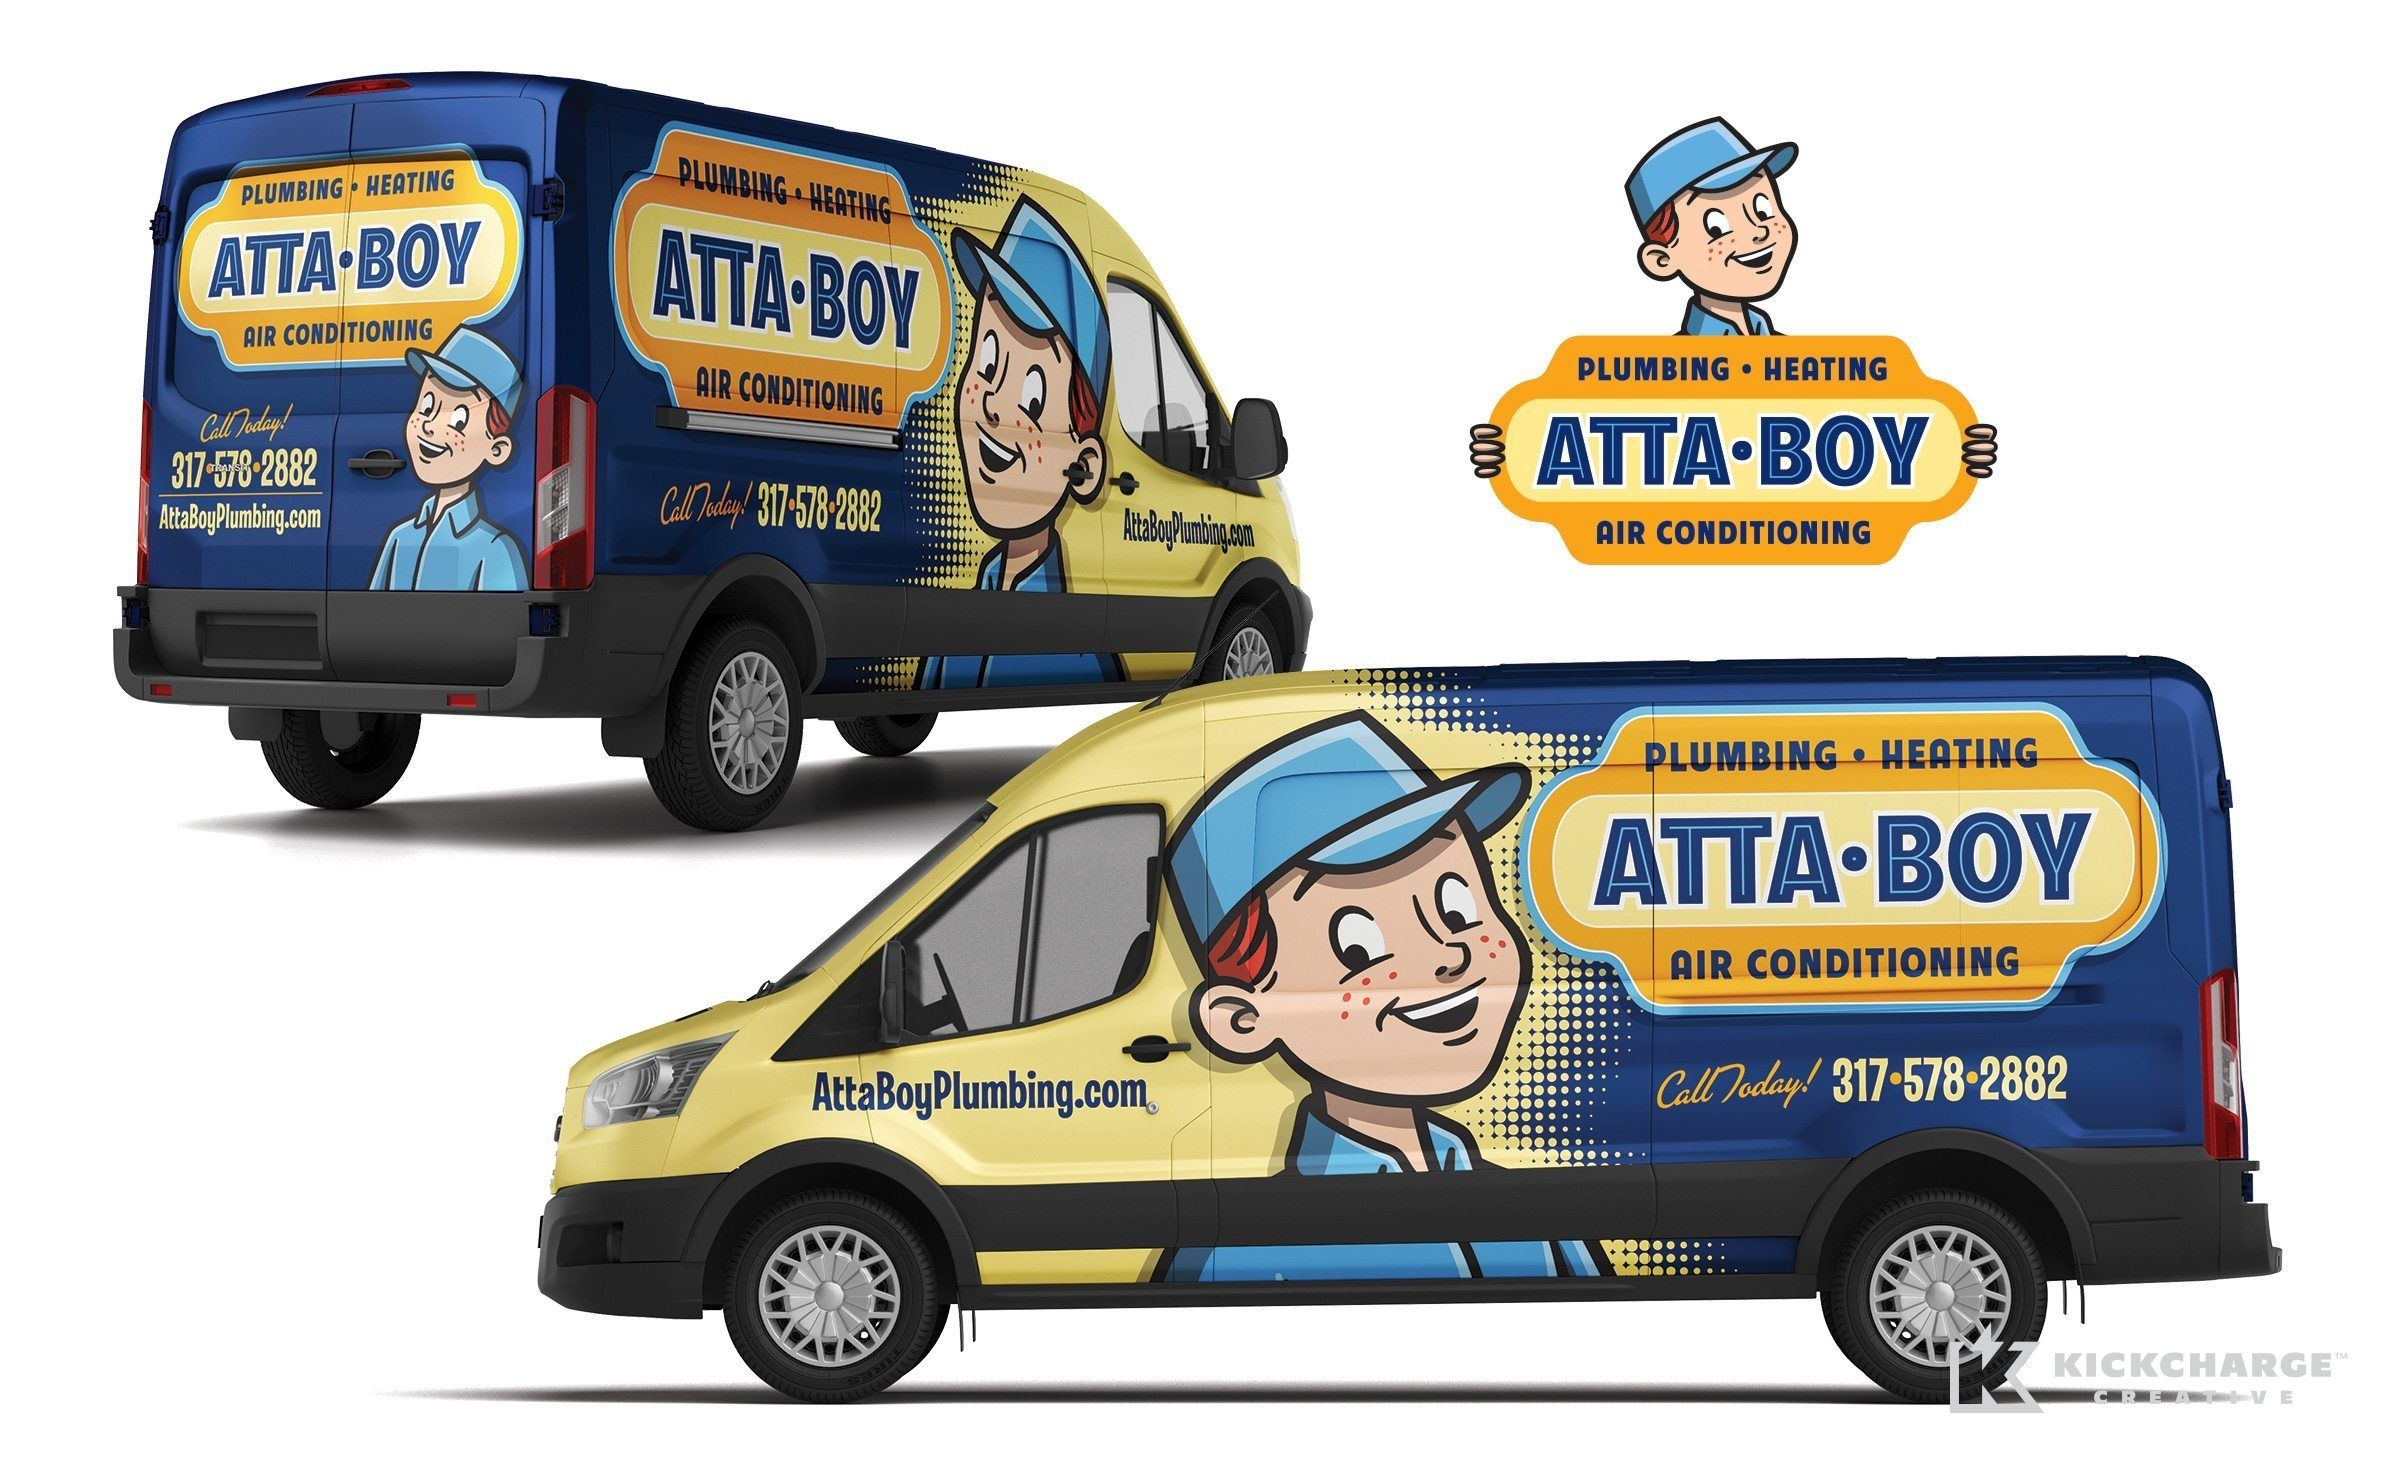 Attaboy Plumbing Kickcharge Creative Car Wrap Design Cool